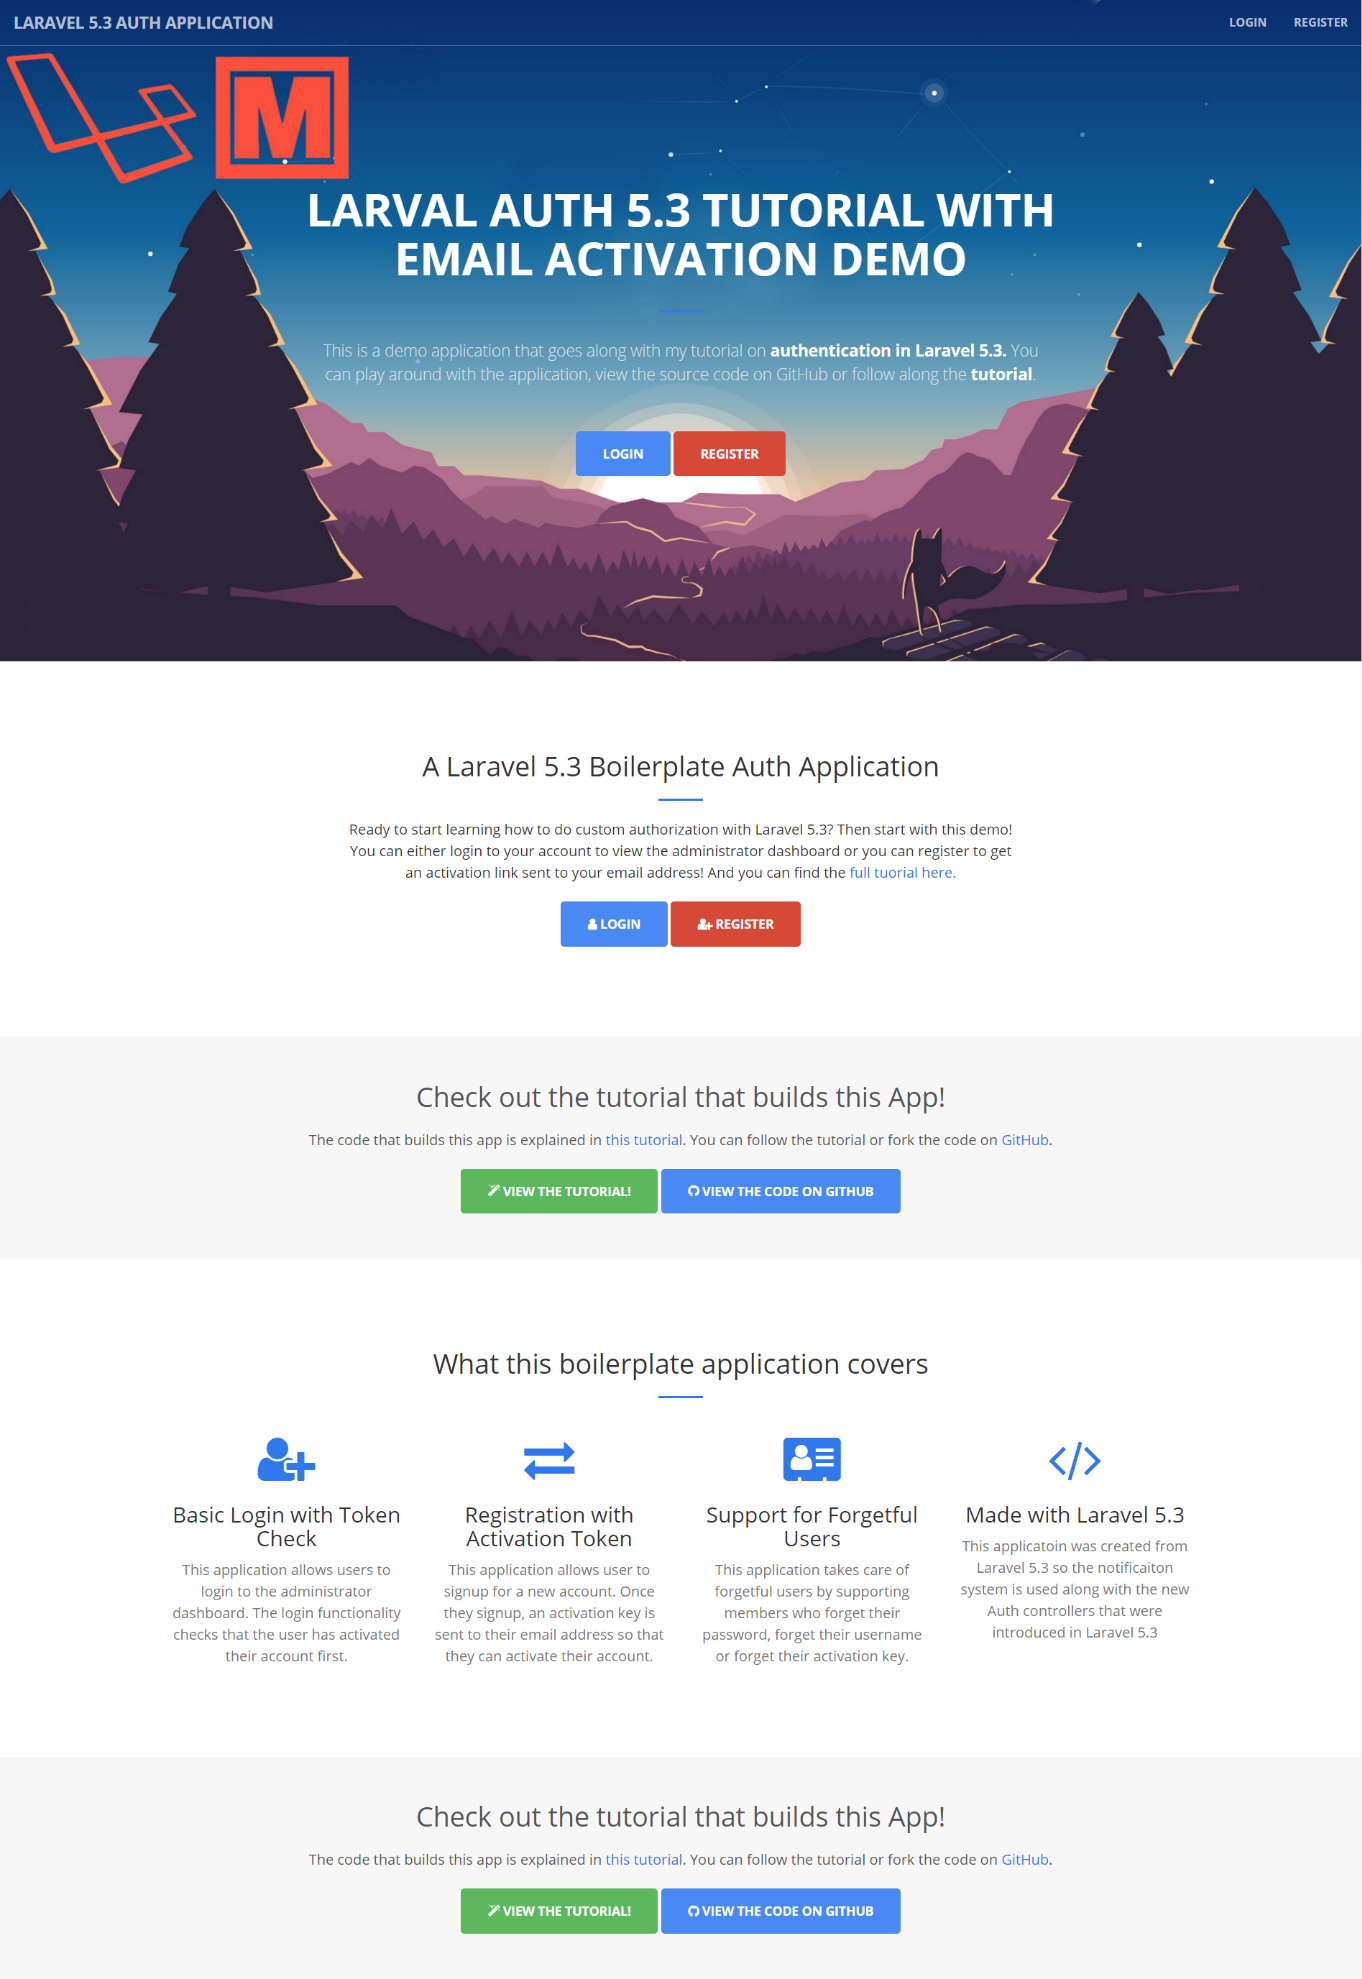 laravel-5_3-auth-app-05-full-front-layout